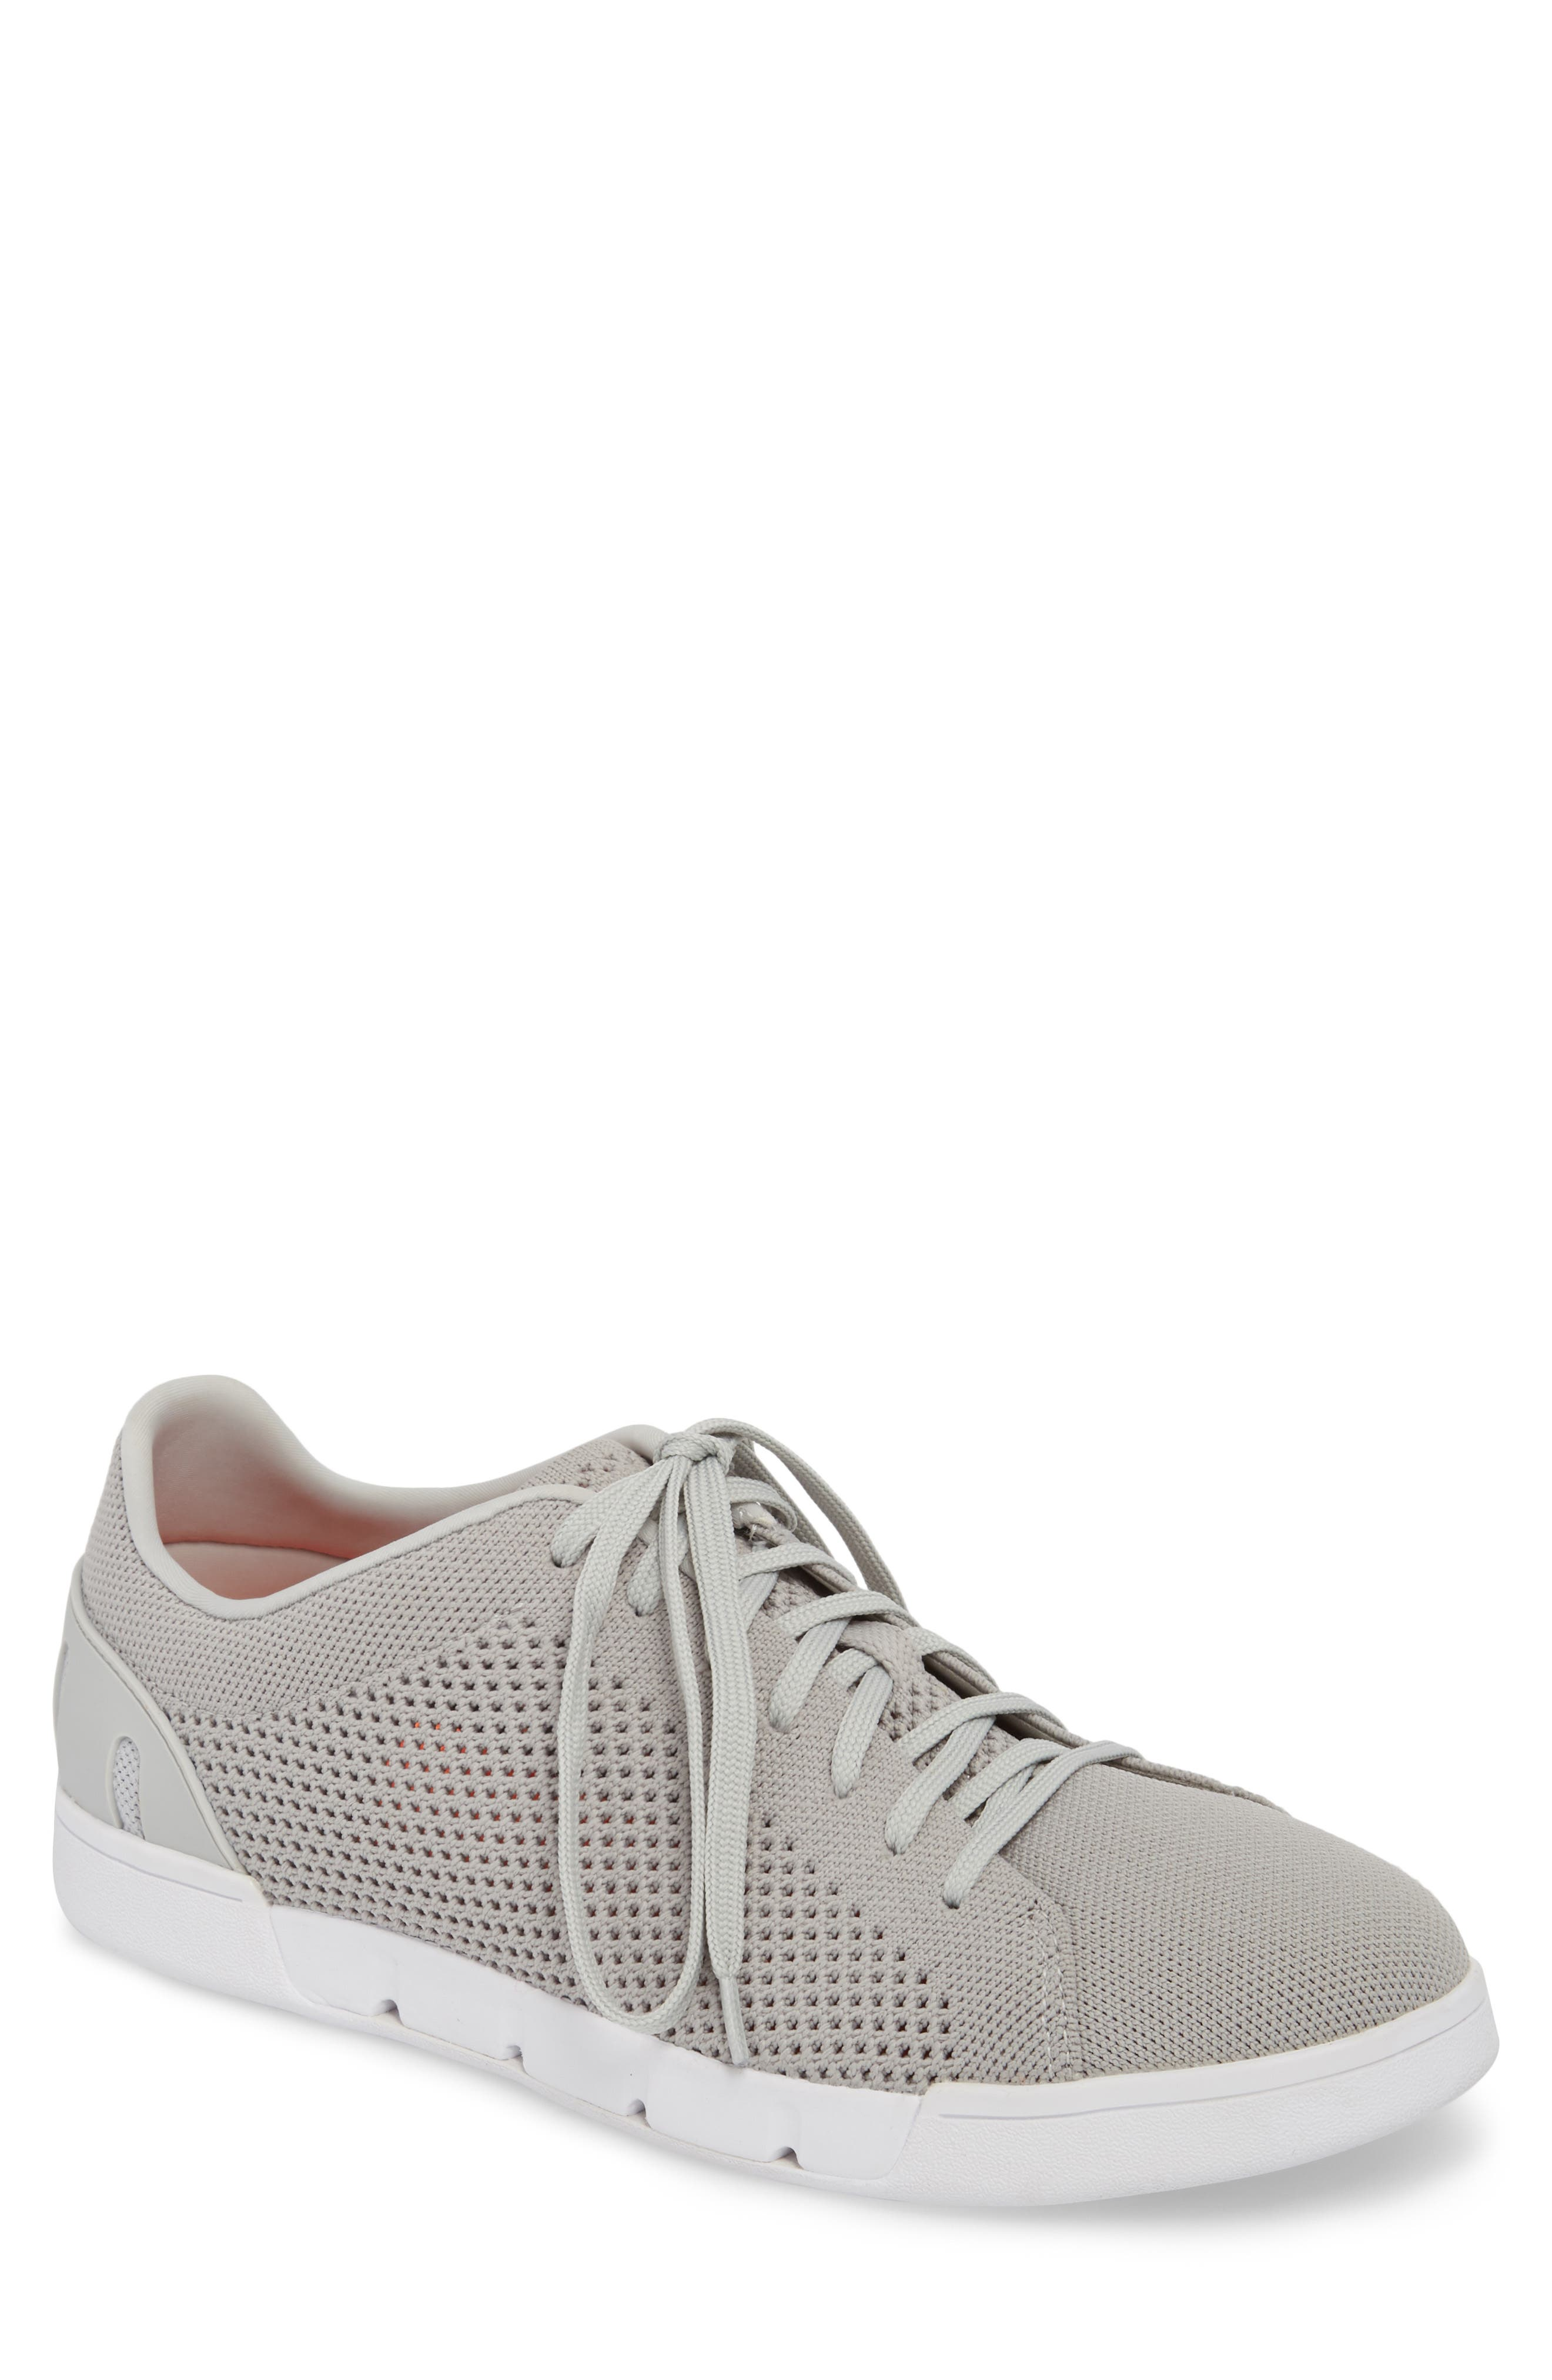 Breeze Tennis Washable Knit Sneaker,                         Main,                         color, Light Grey/ White Fabric